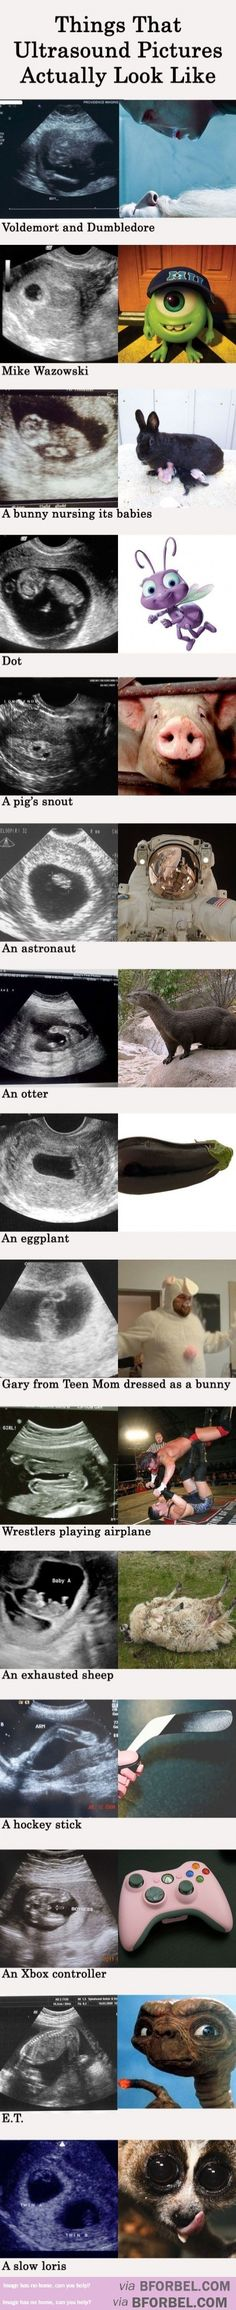 15 Ultrasounds And What They Really Look Like…